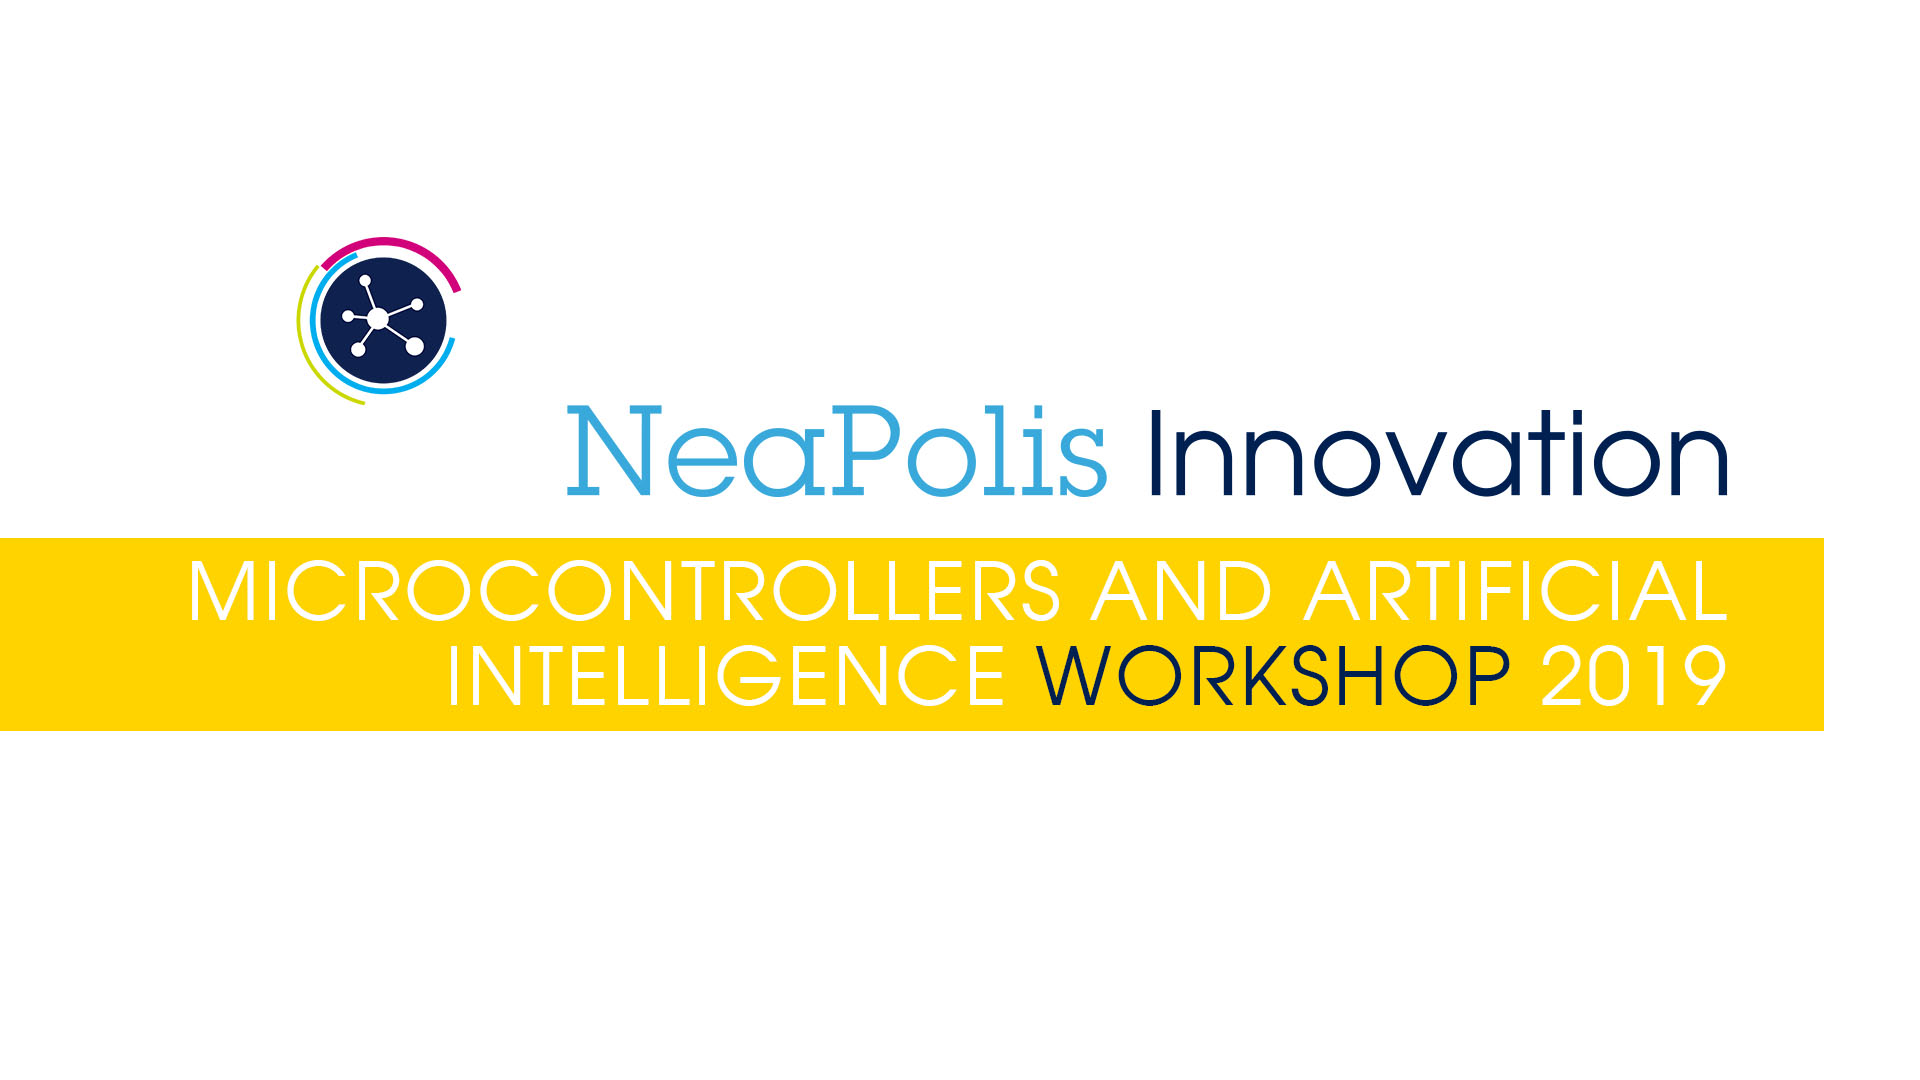 Microcontrollers and artificial intelligence workshop 2019